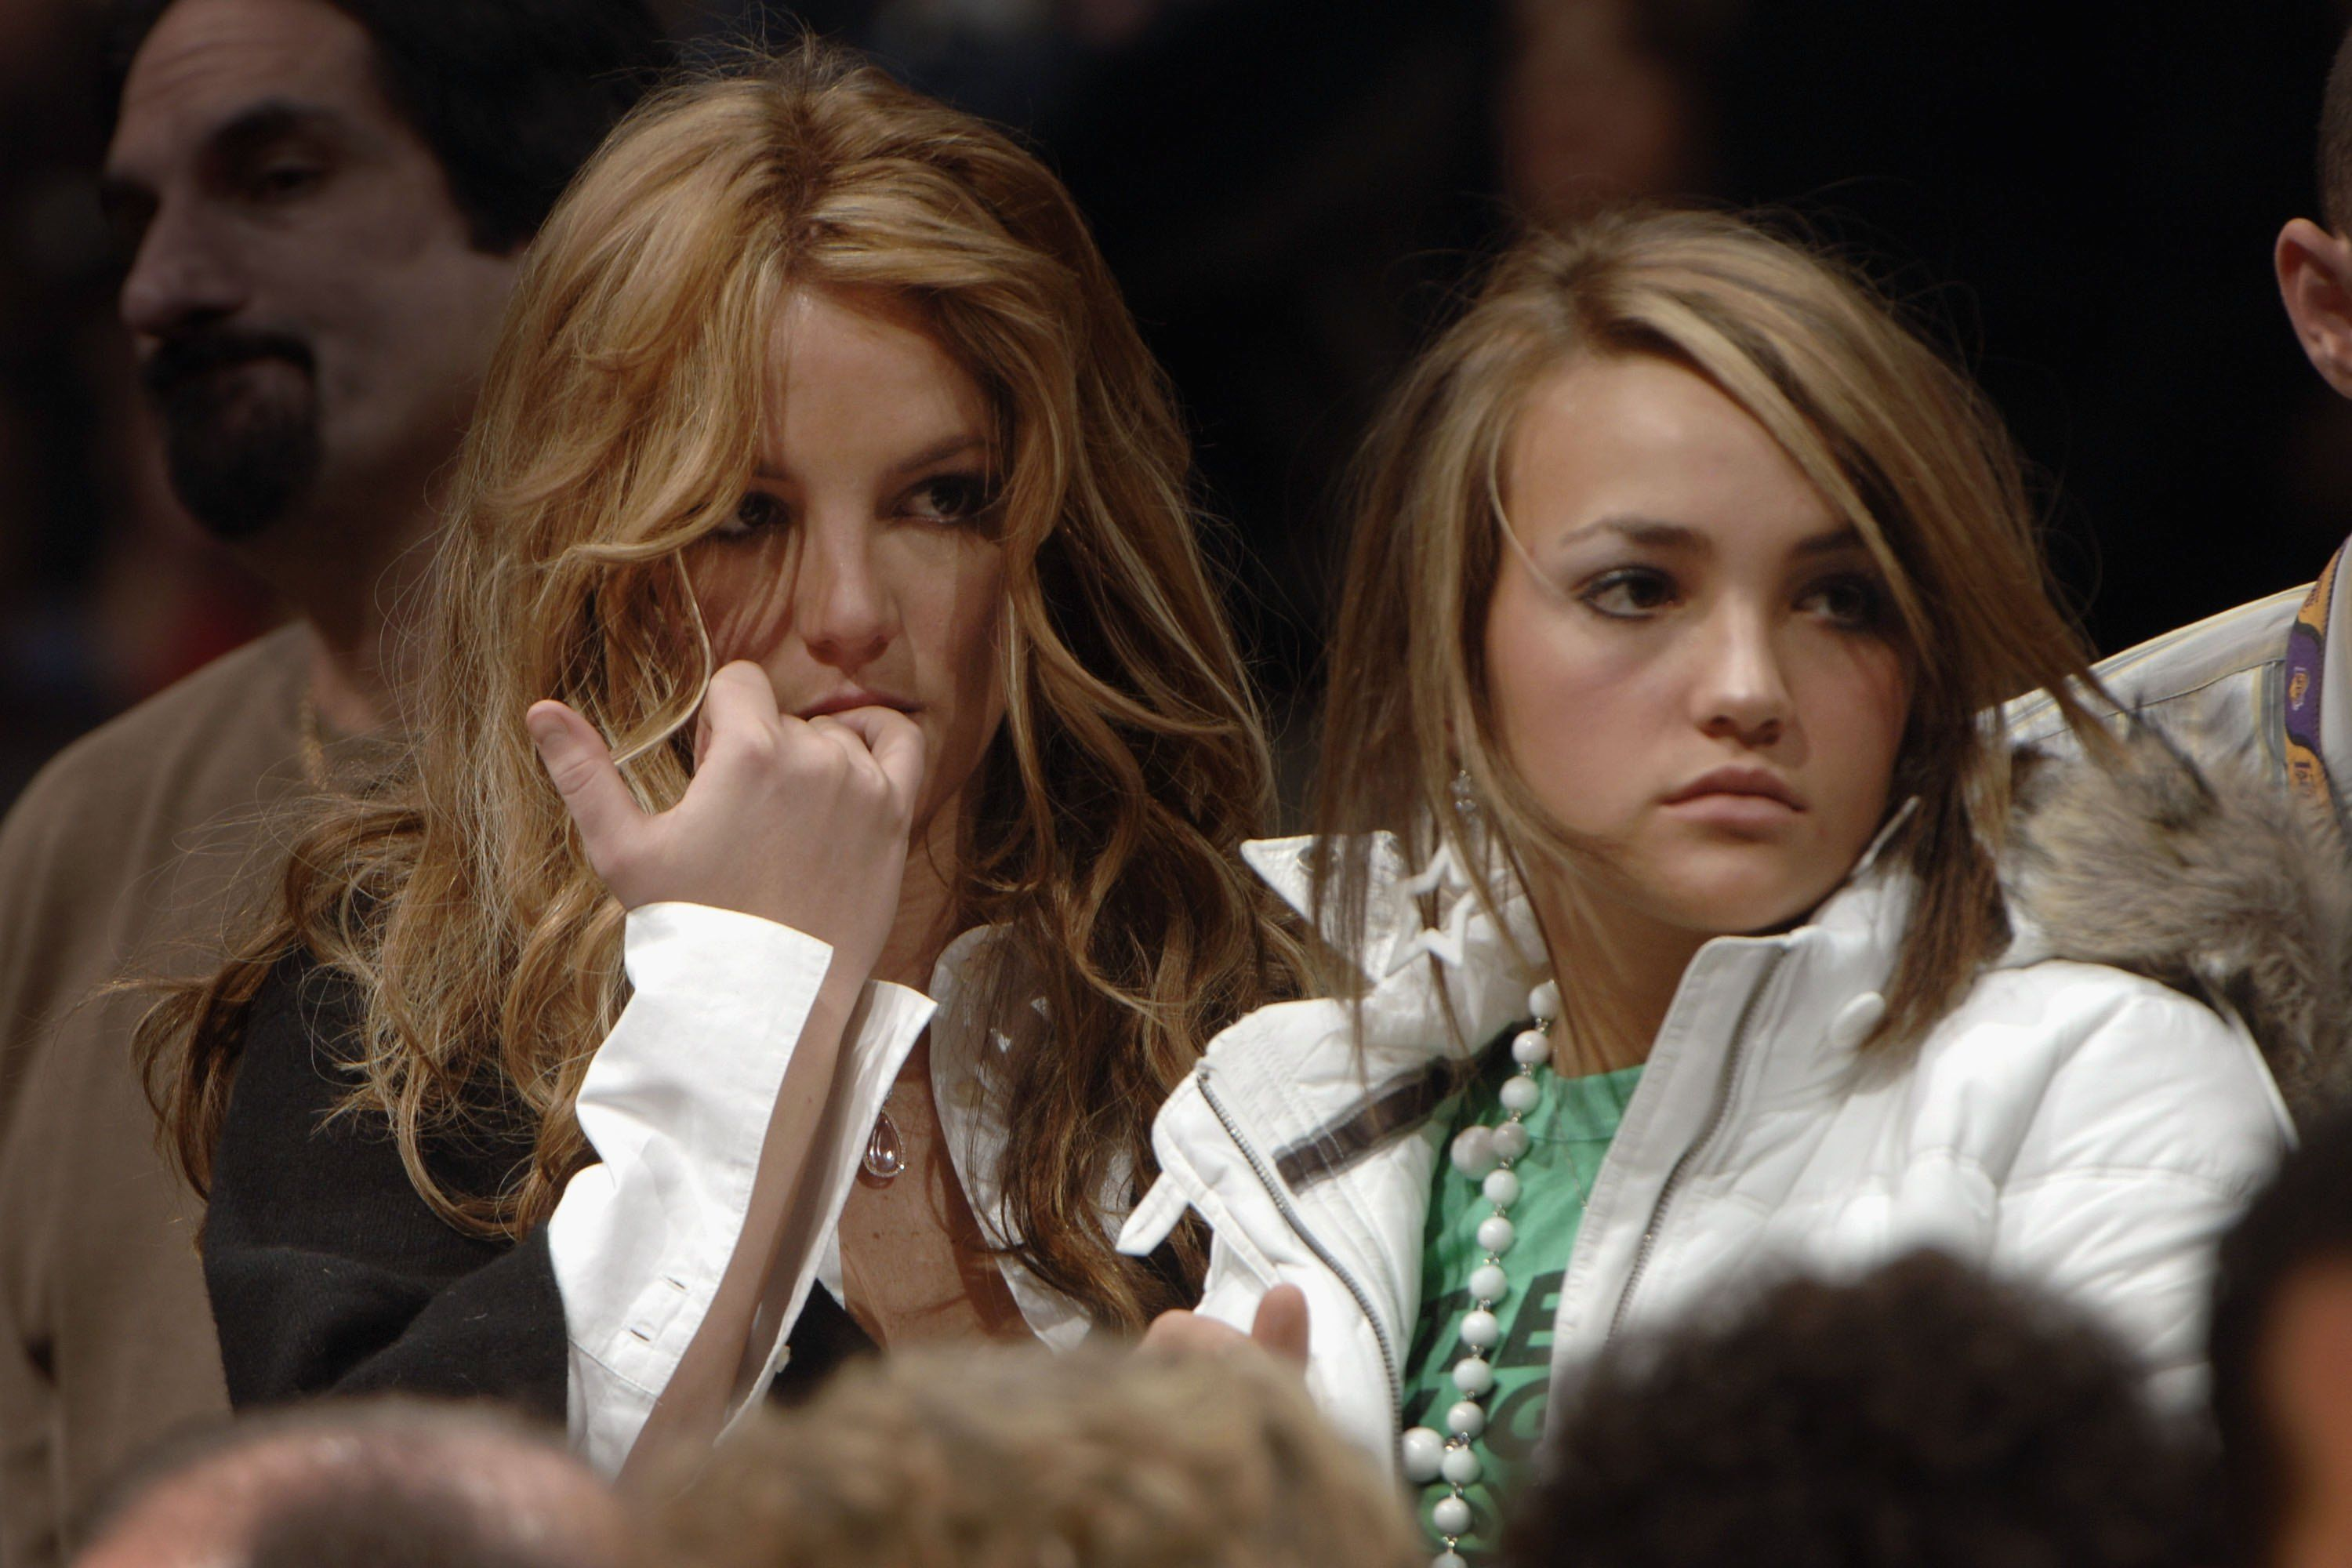 Britney Spears sand sister Jamie Lynn Spears at a Los Angeles Lakers' game in 2006 at Staples Center in Los Angeles   Source: Getty Images